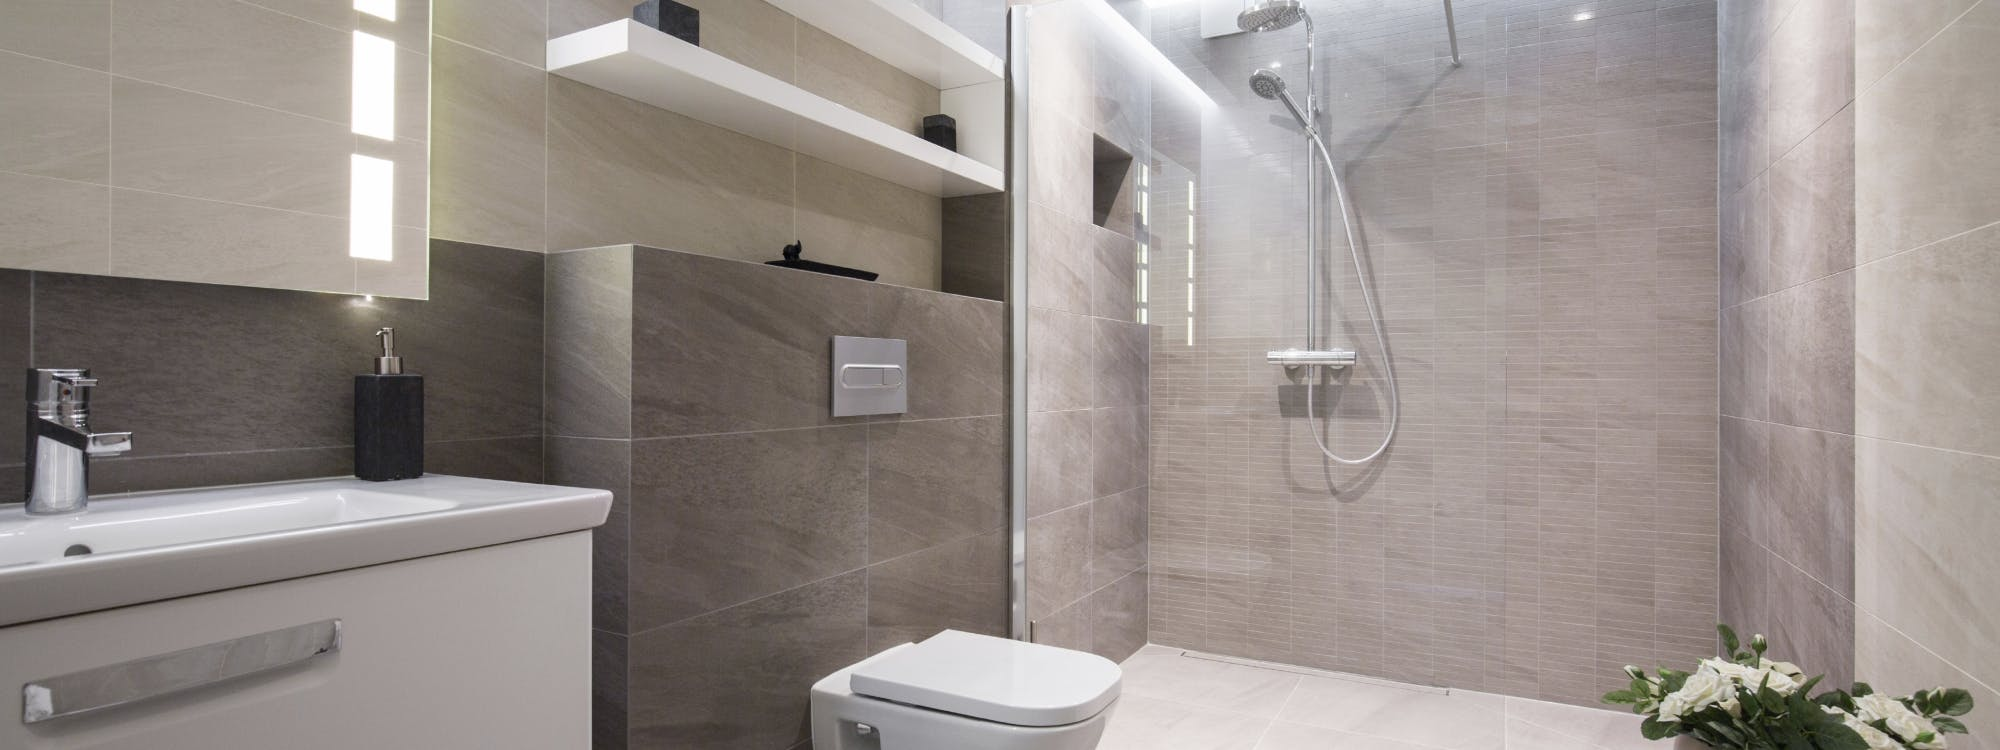 shower rooms - designed, supplied & installed